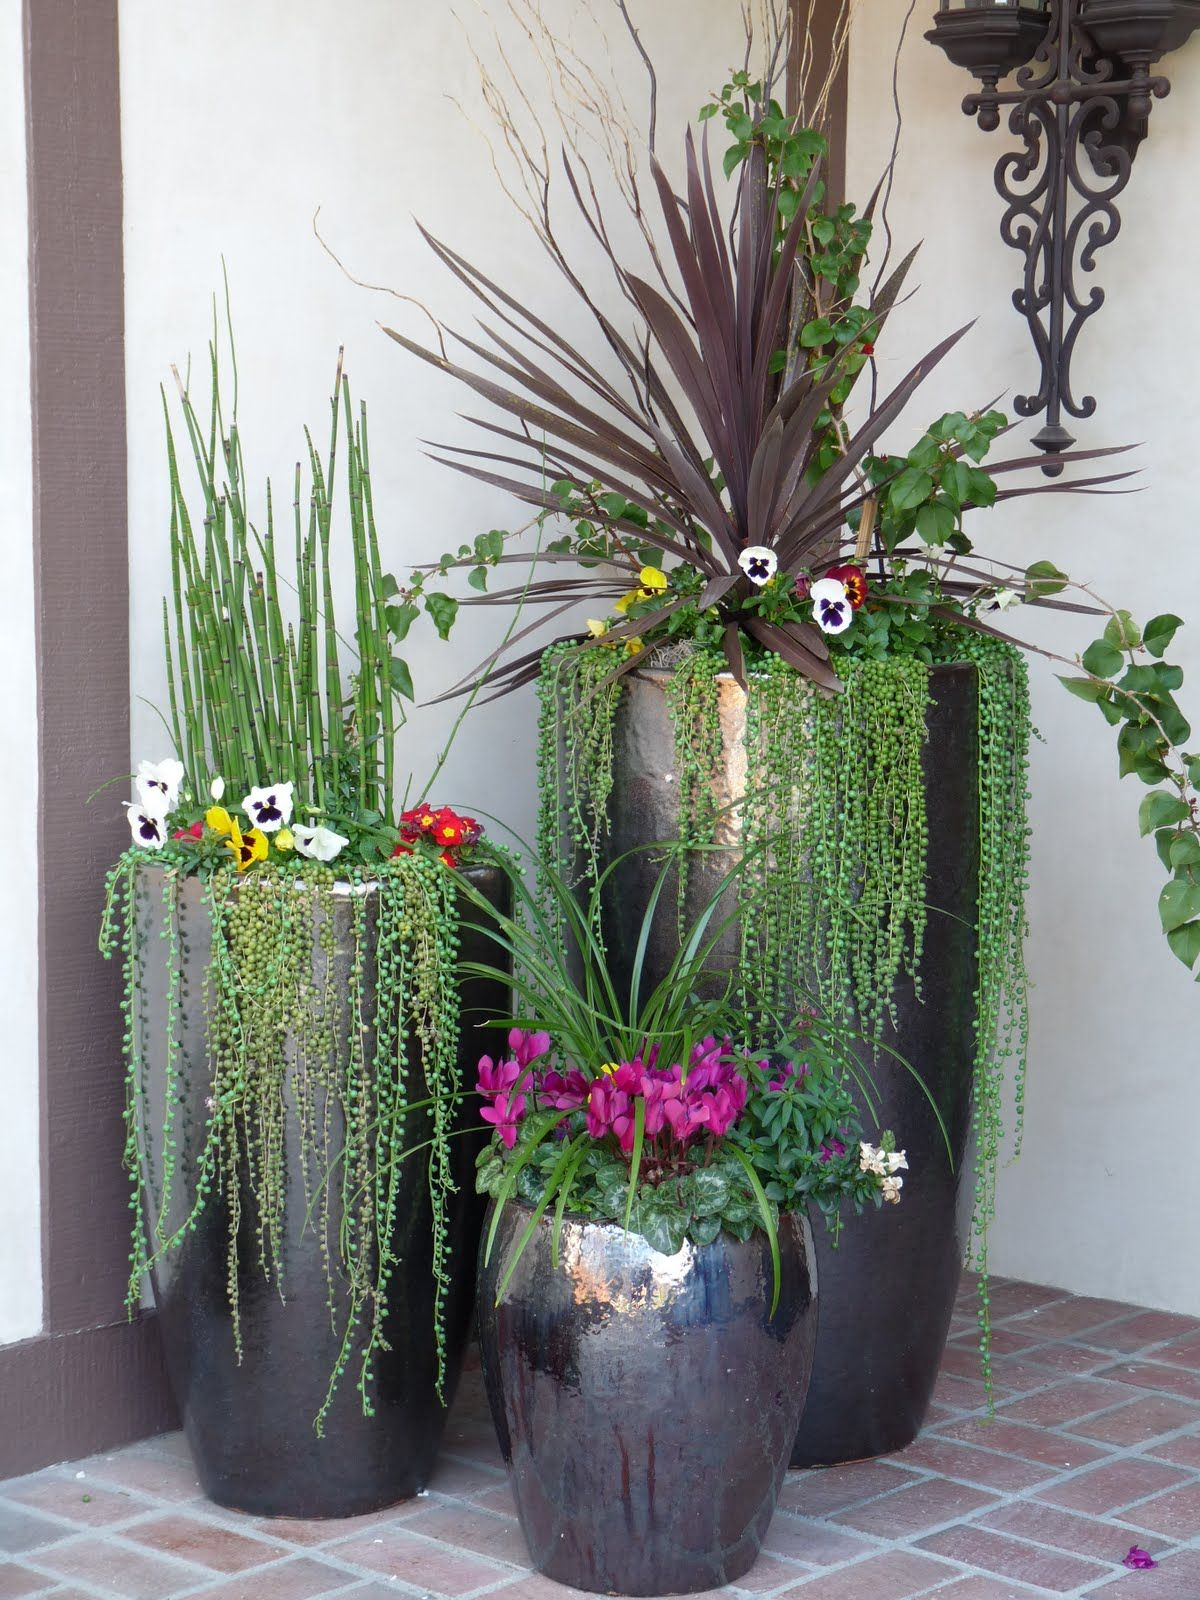 Plants will adorn our home potted plants outdoor ideas love this for